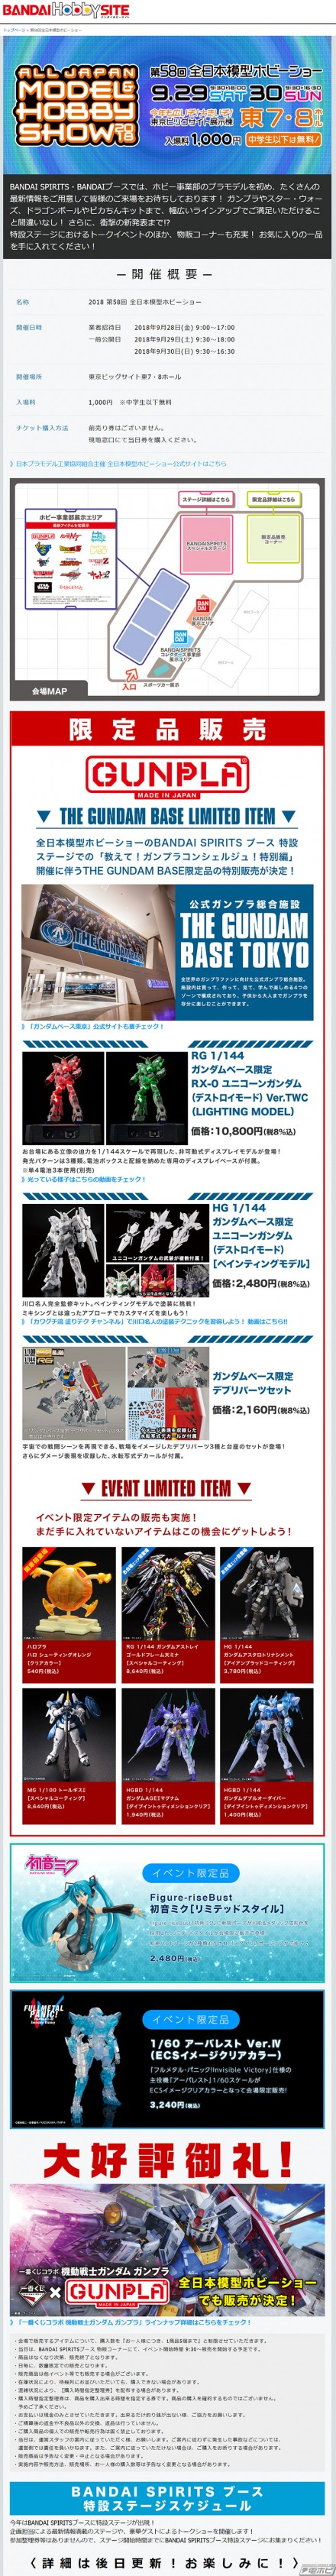 screencapture-bandai-hobby-net-site-hobbyshow-2018-09-10-14_13_57